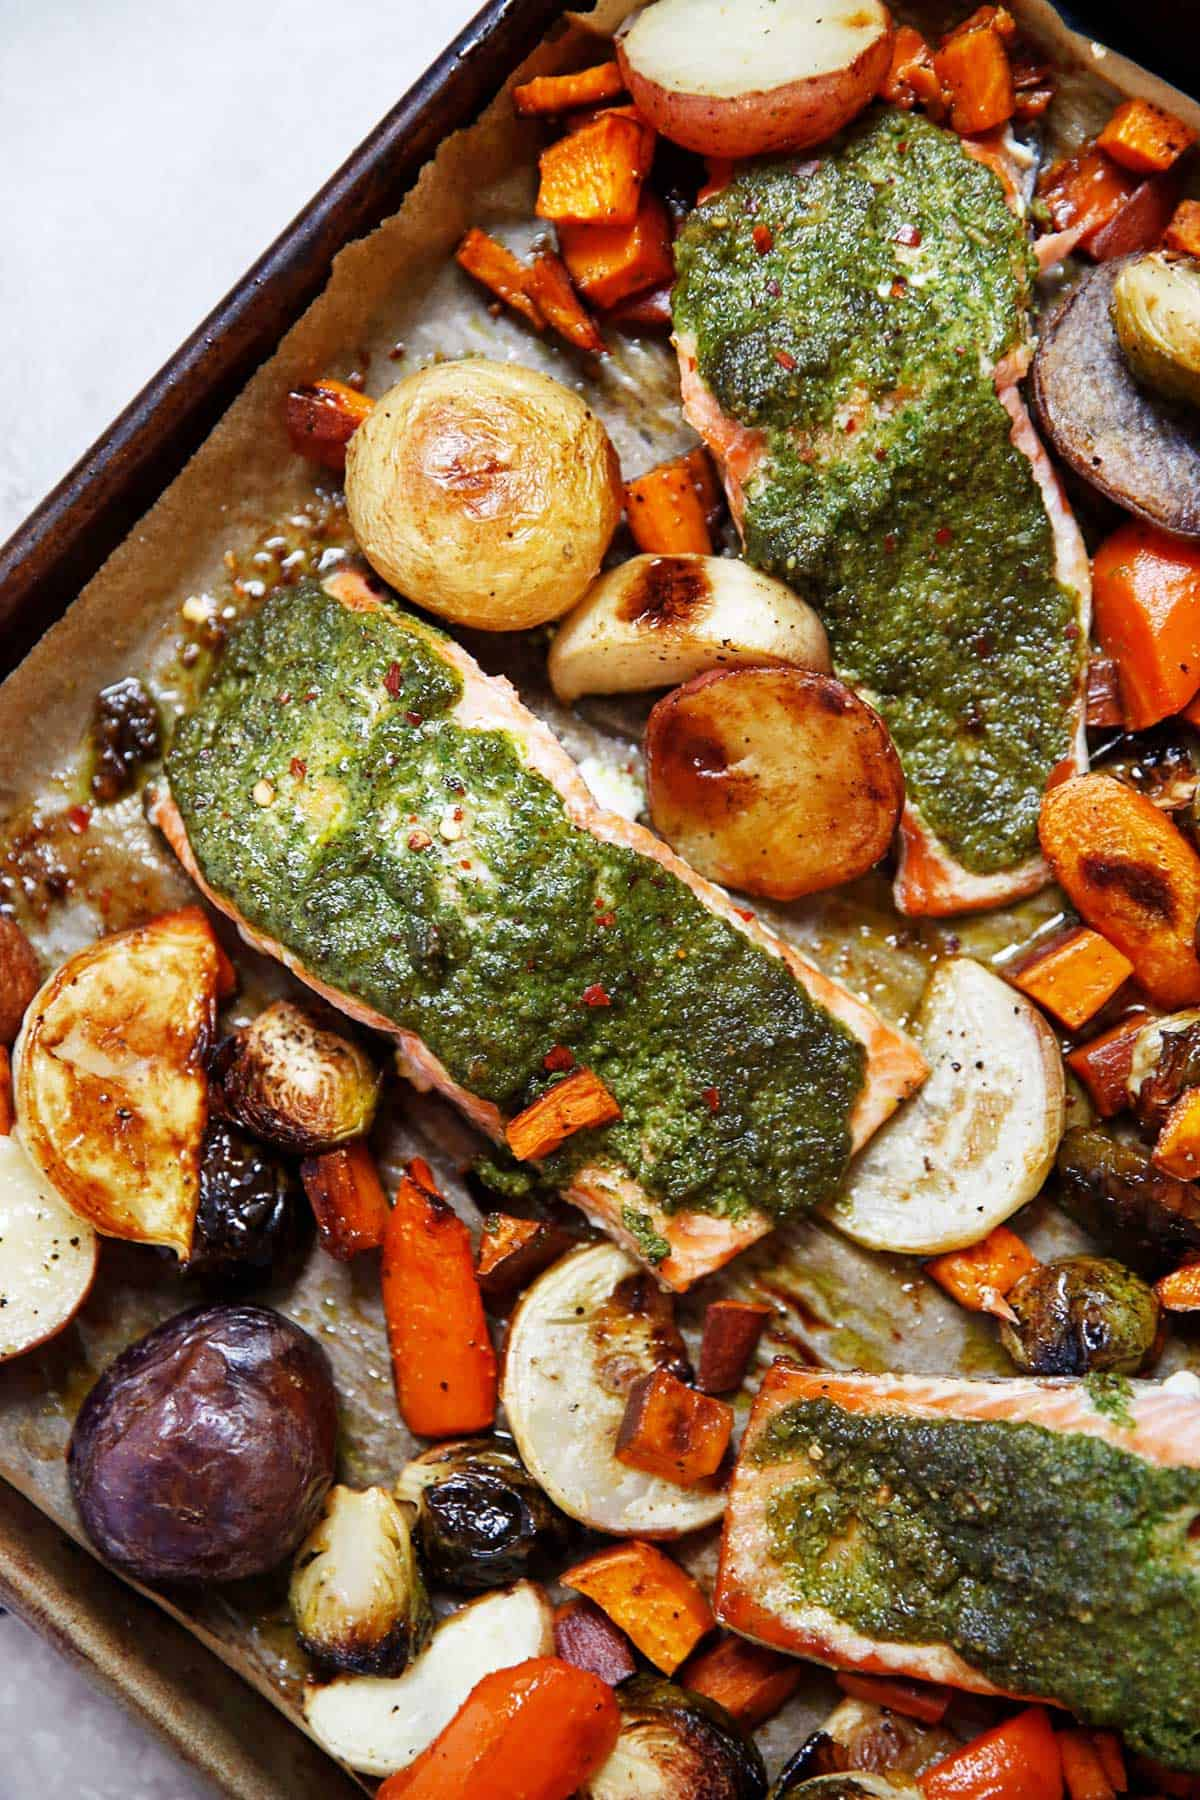 Sheet pan salmon with root vegetables and salmon